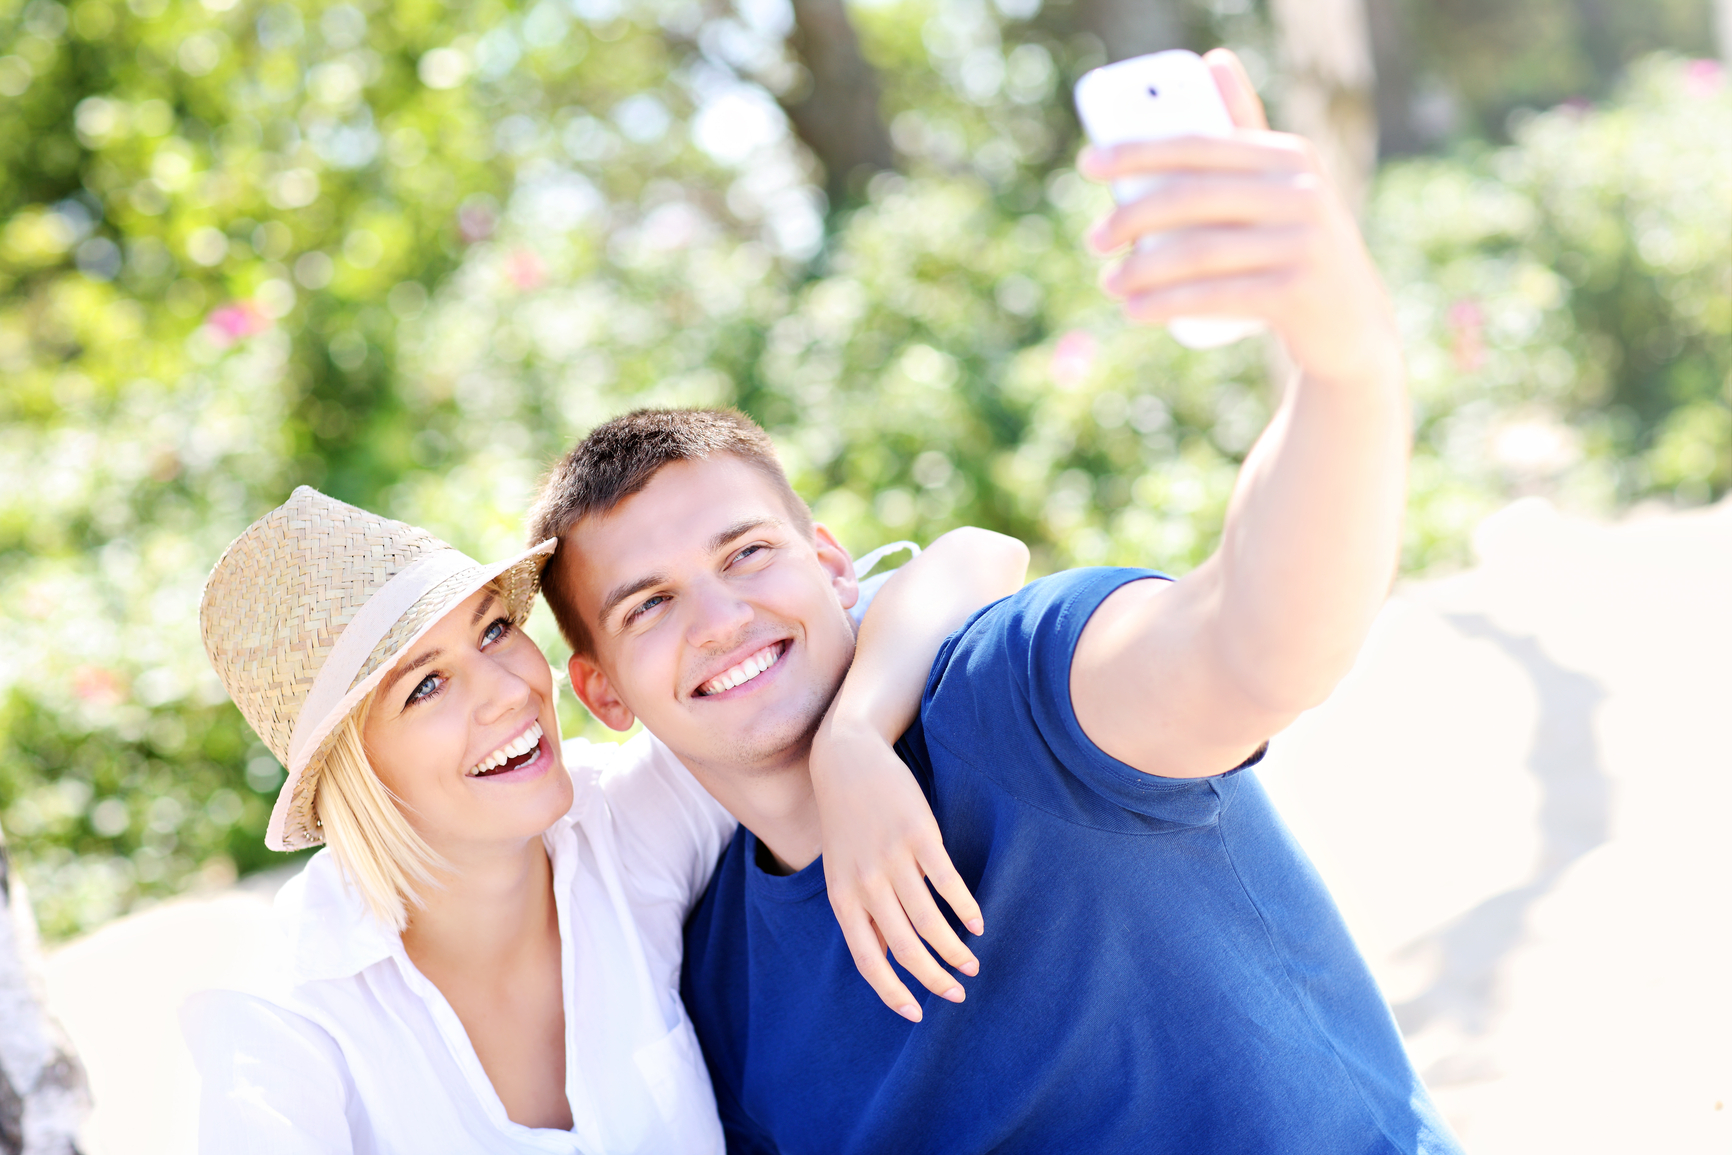 Young couple taking a picture of themselves smiling